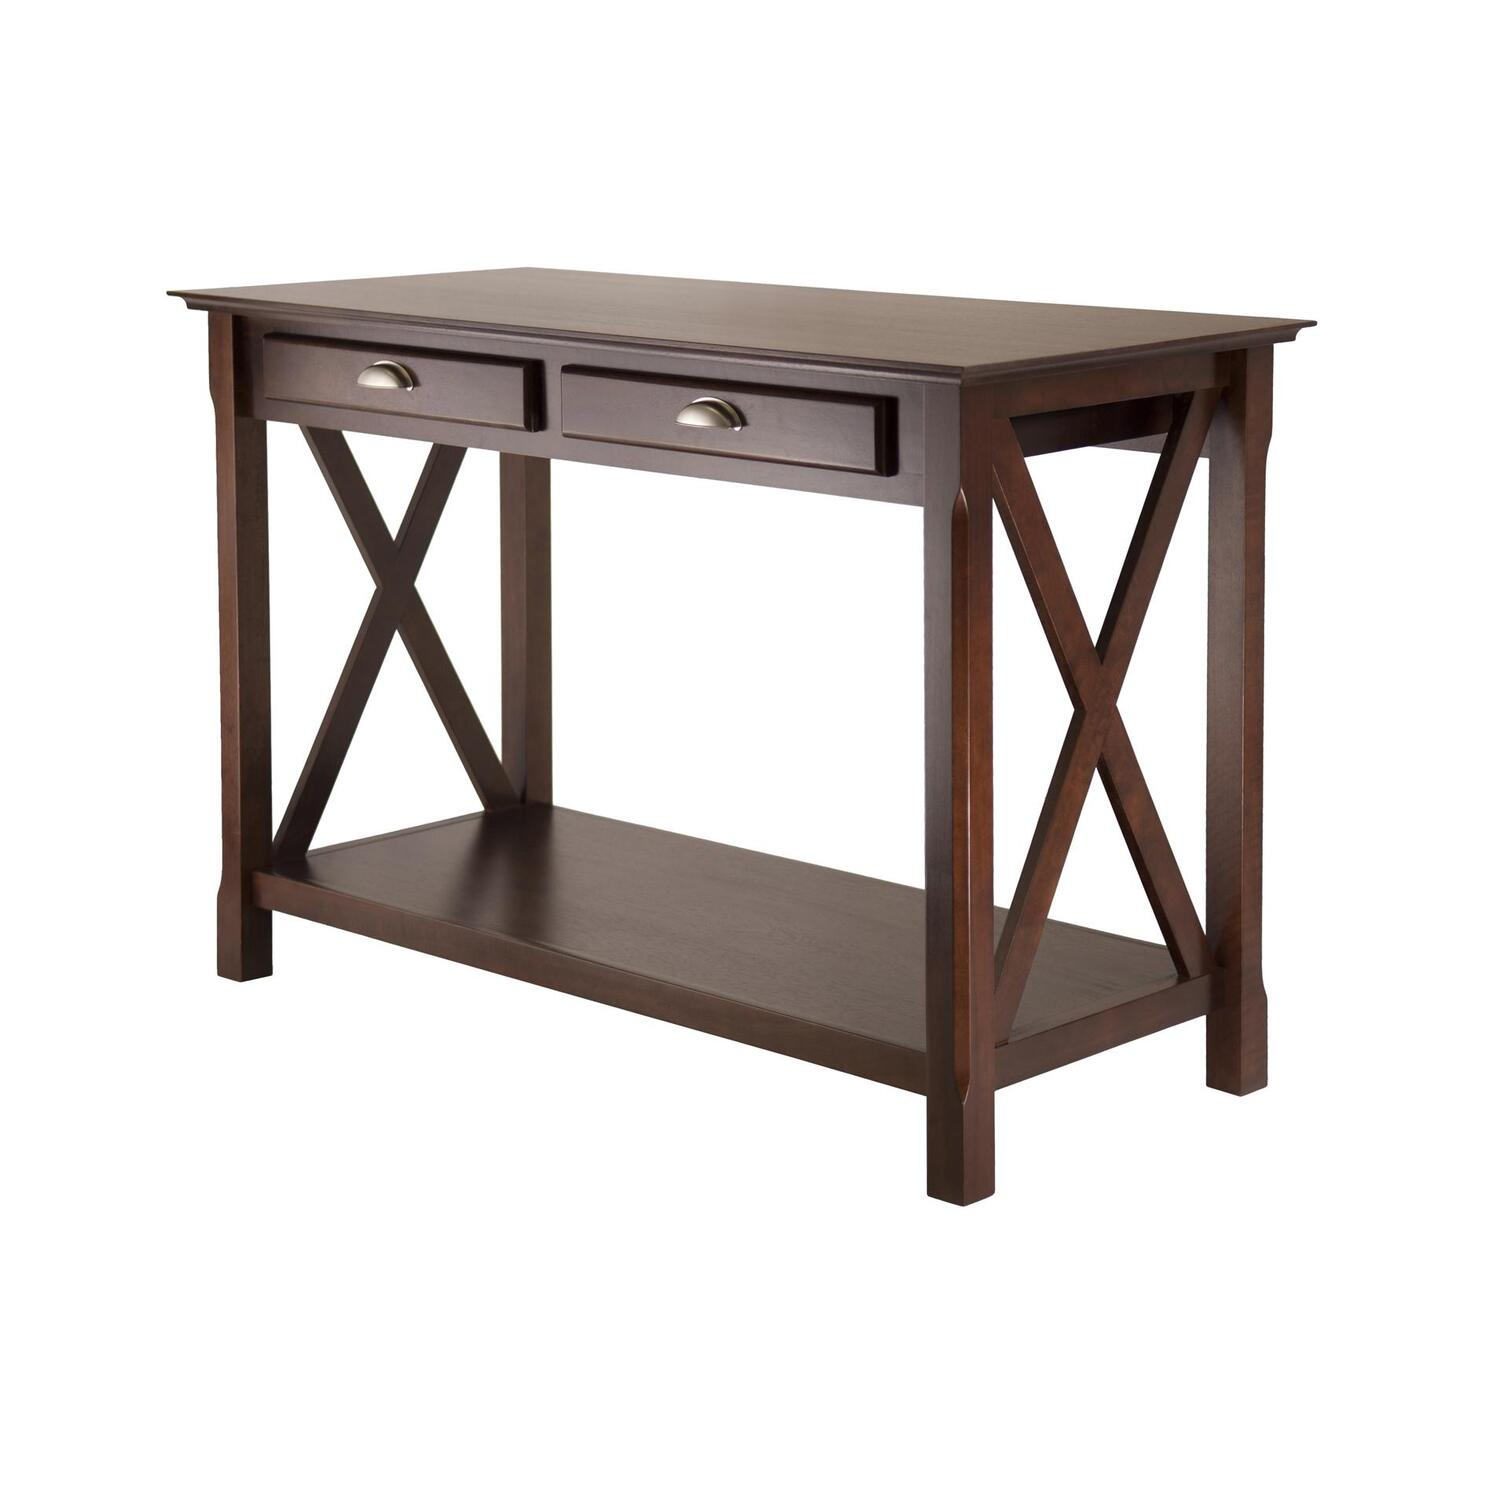 Winsome xola console table with 2 drawers by oj commerce for Hall console table